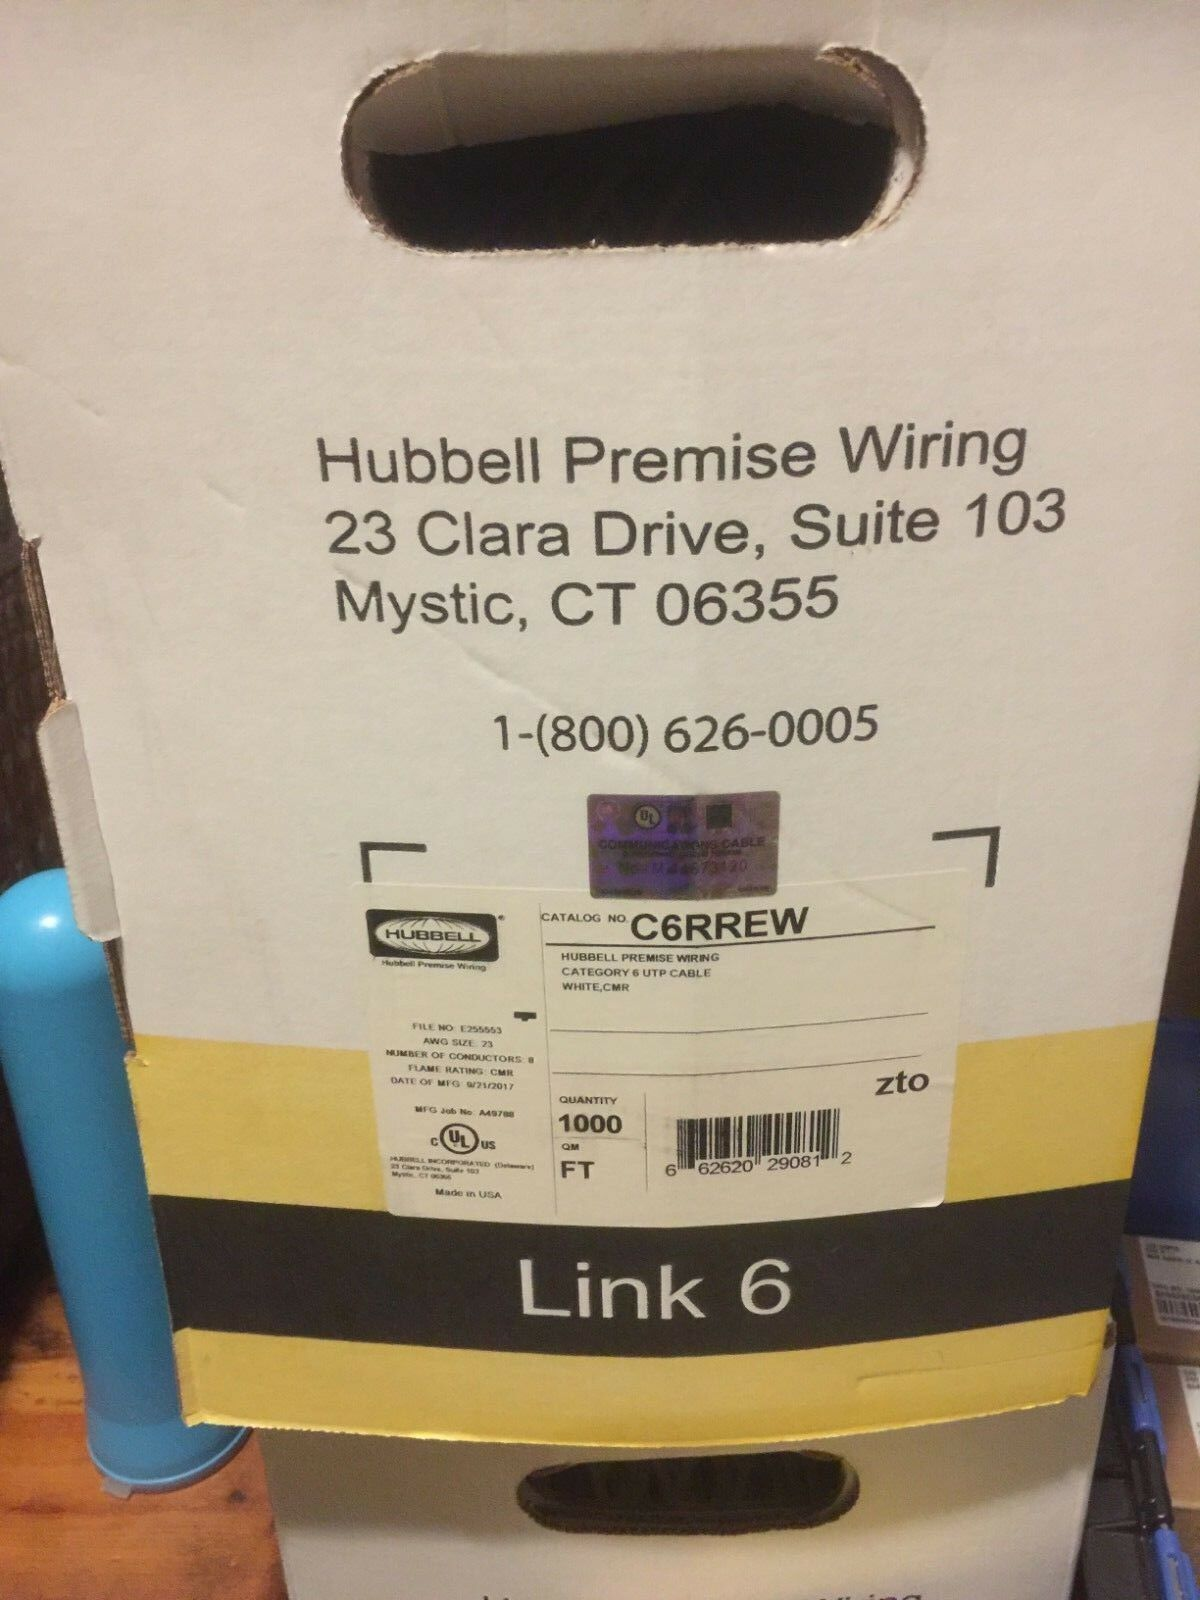 Hubbell C6rrew Premise Wiring Cable Cat 6 Utp White Cmr 1000 Ebay Norton Secured Powered By Verisign